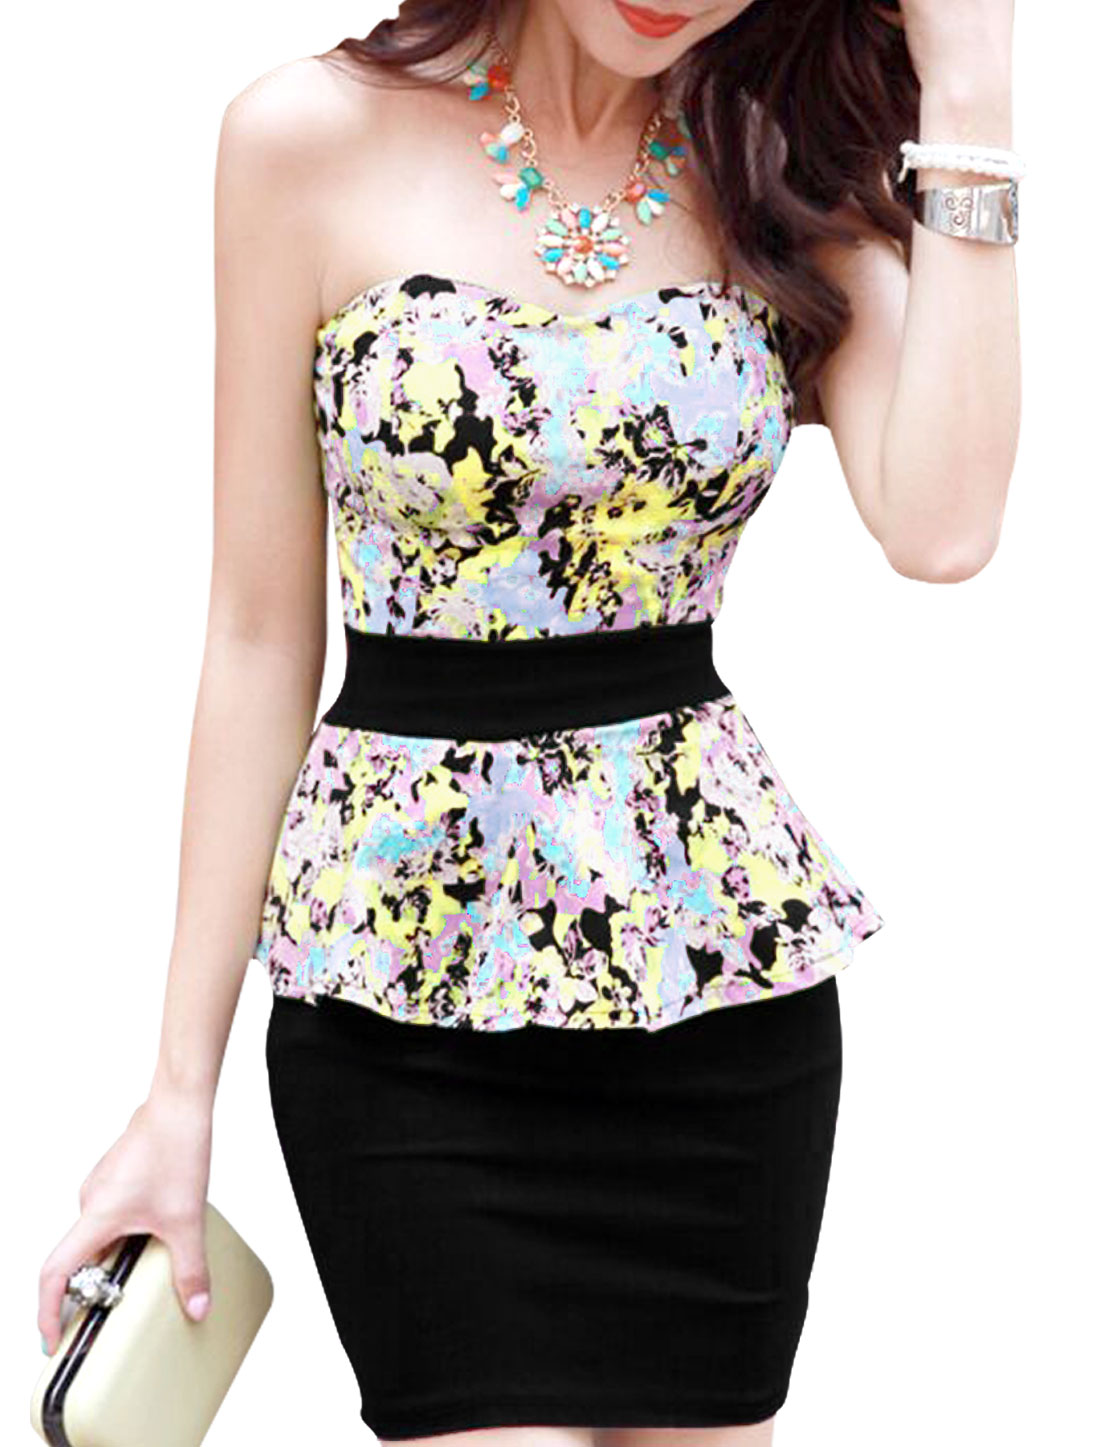 Lady Strapless Flower Pattern Cut Out Back Sexy Peplum Dress Black Pink XS